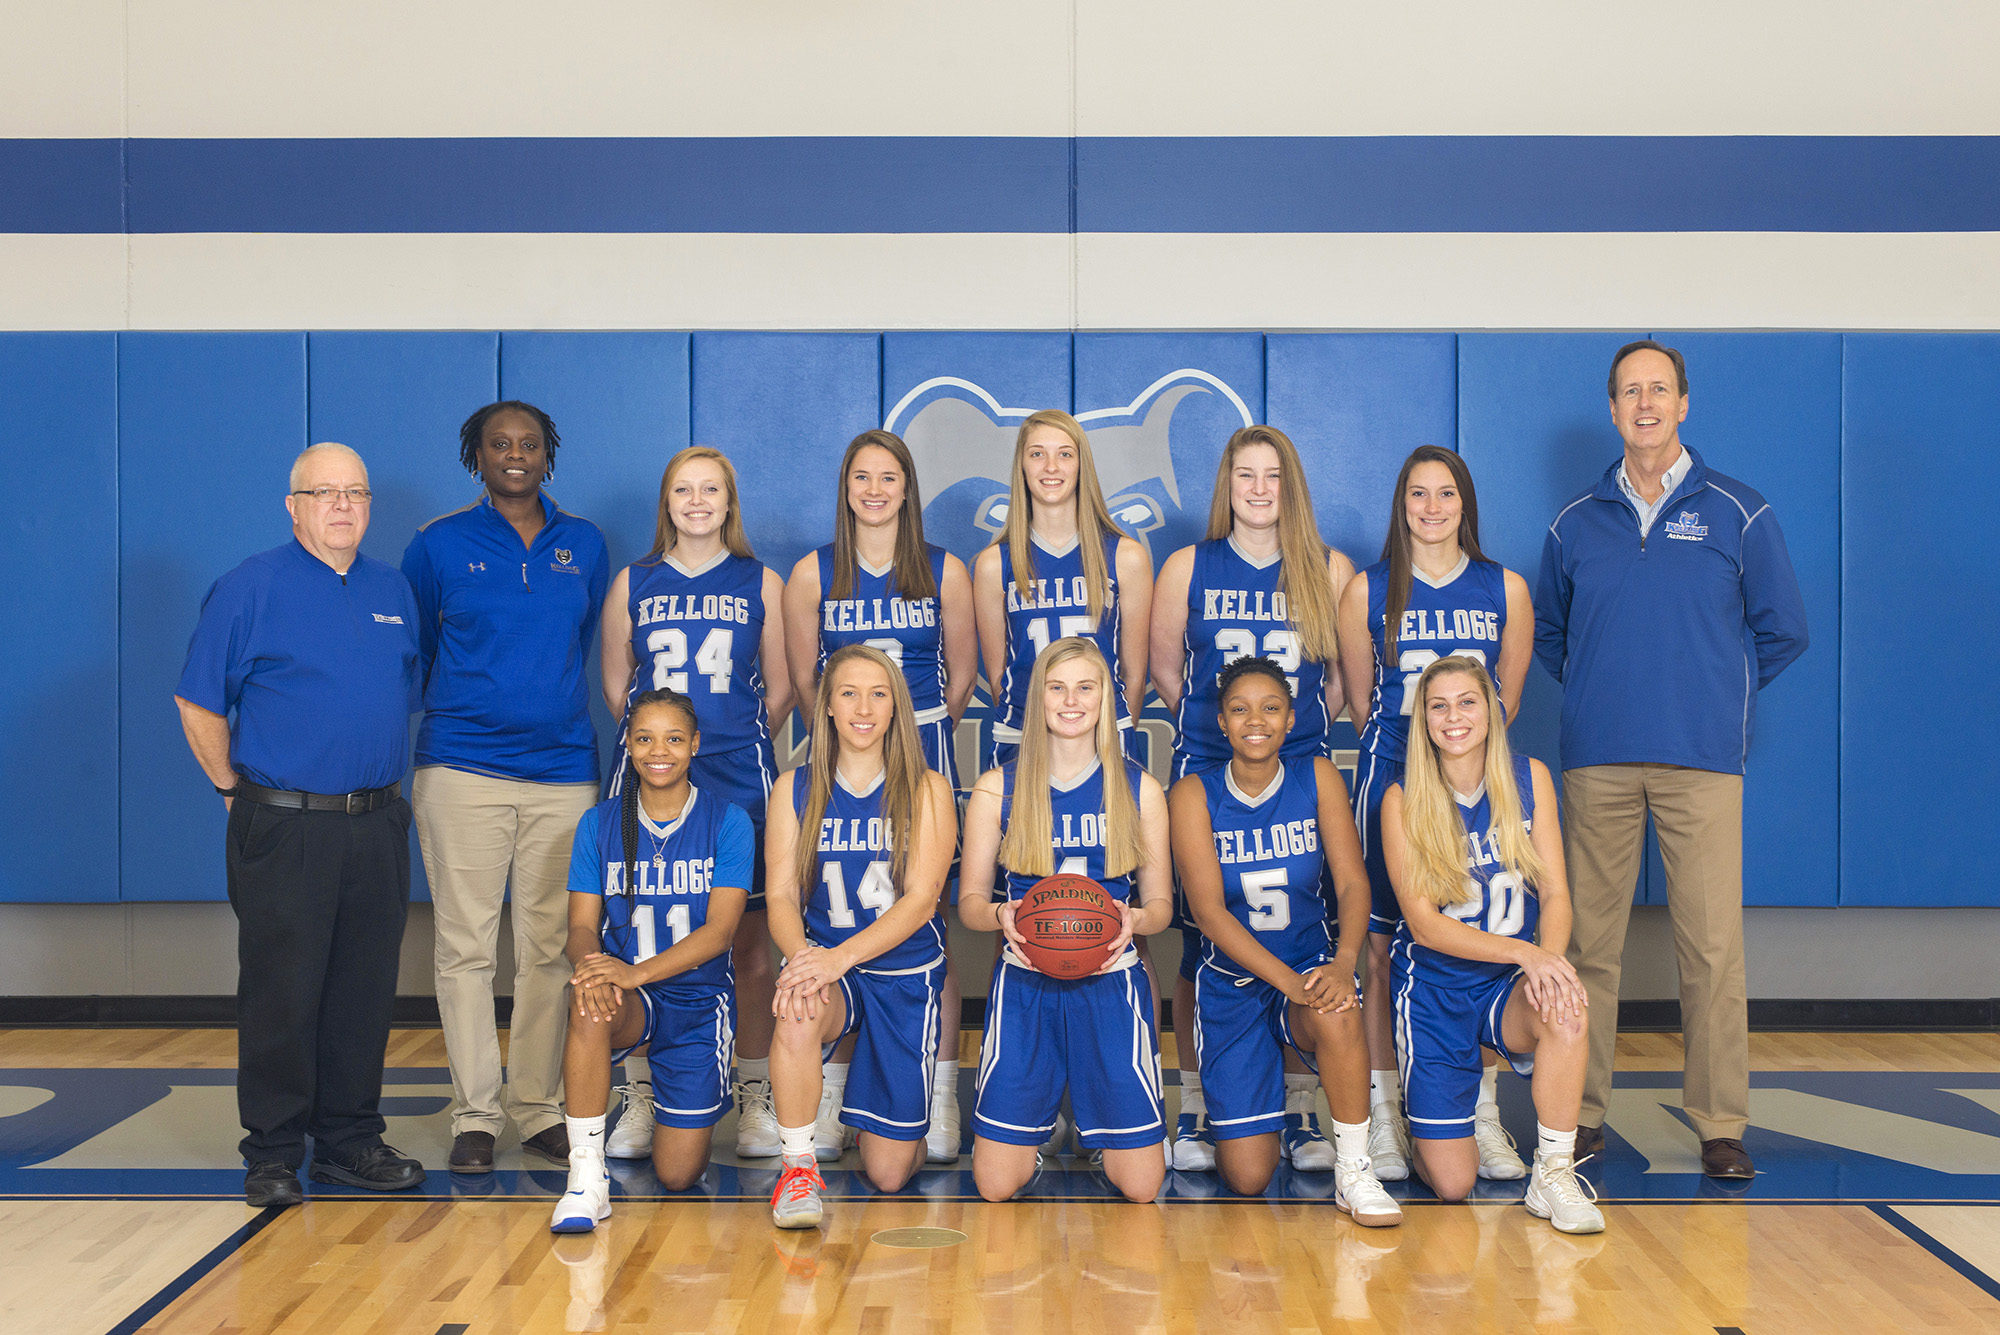 KCC's 2018-19 women's basketball team